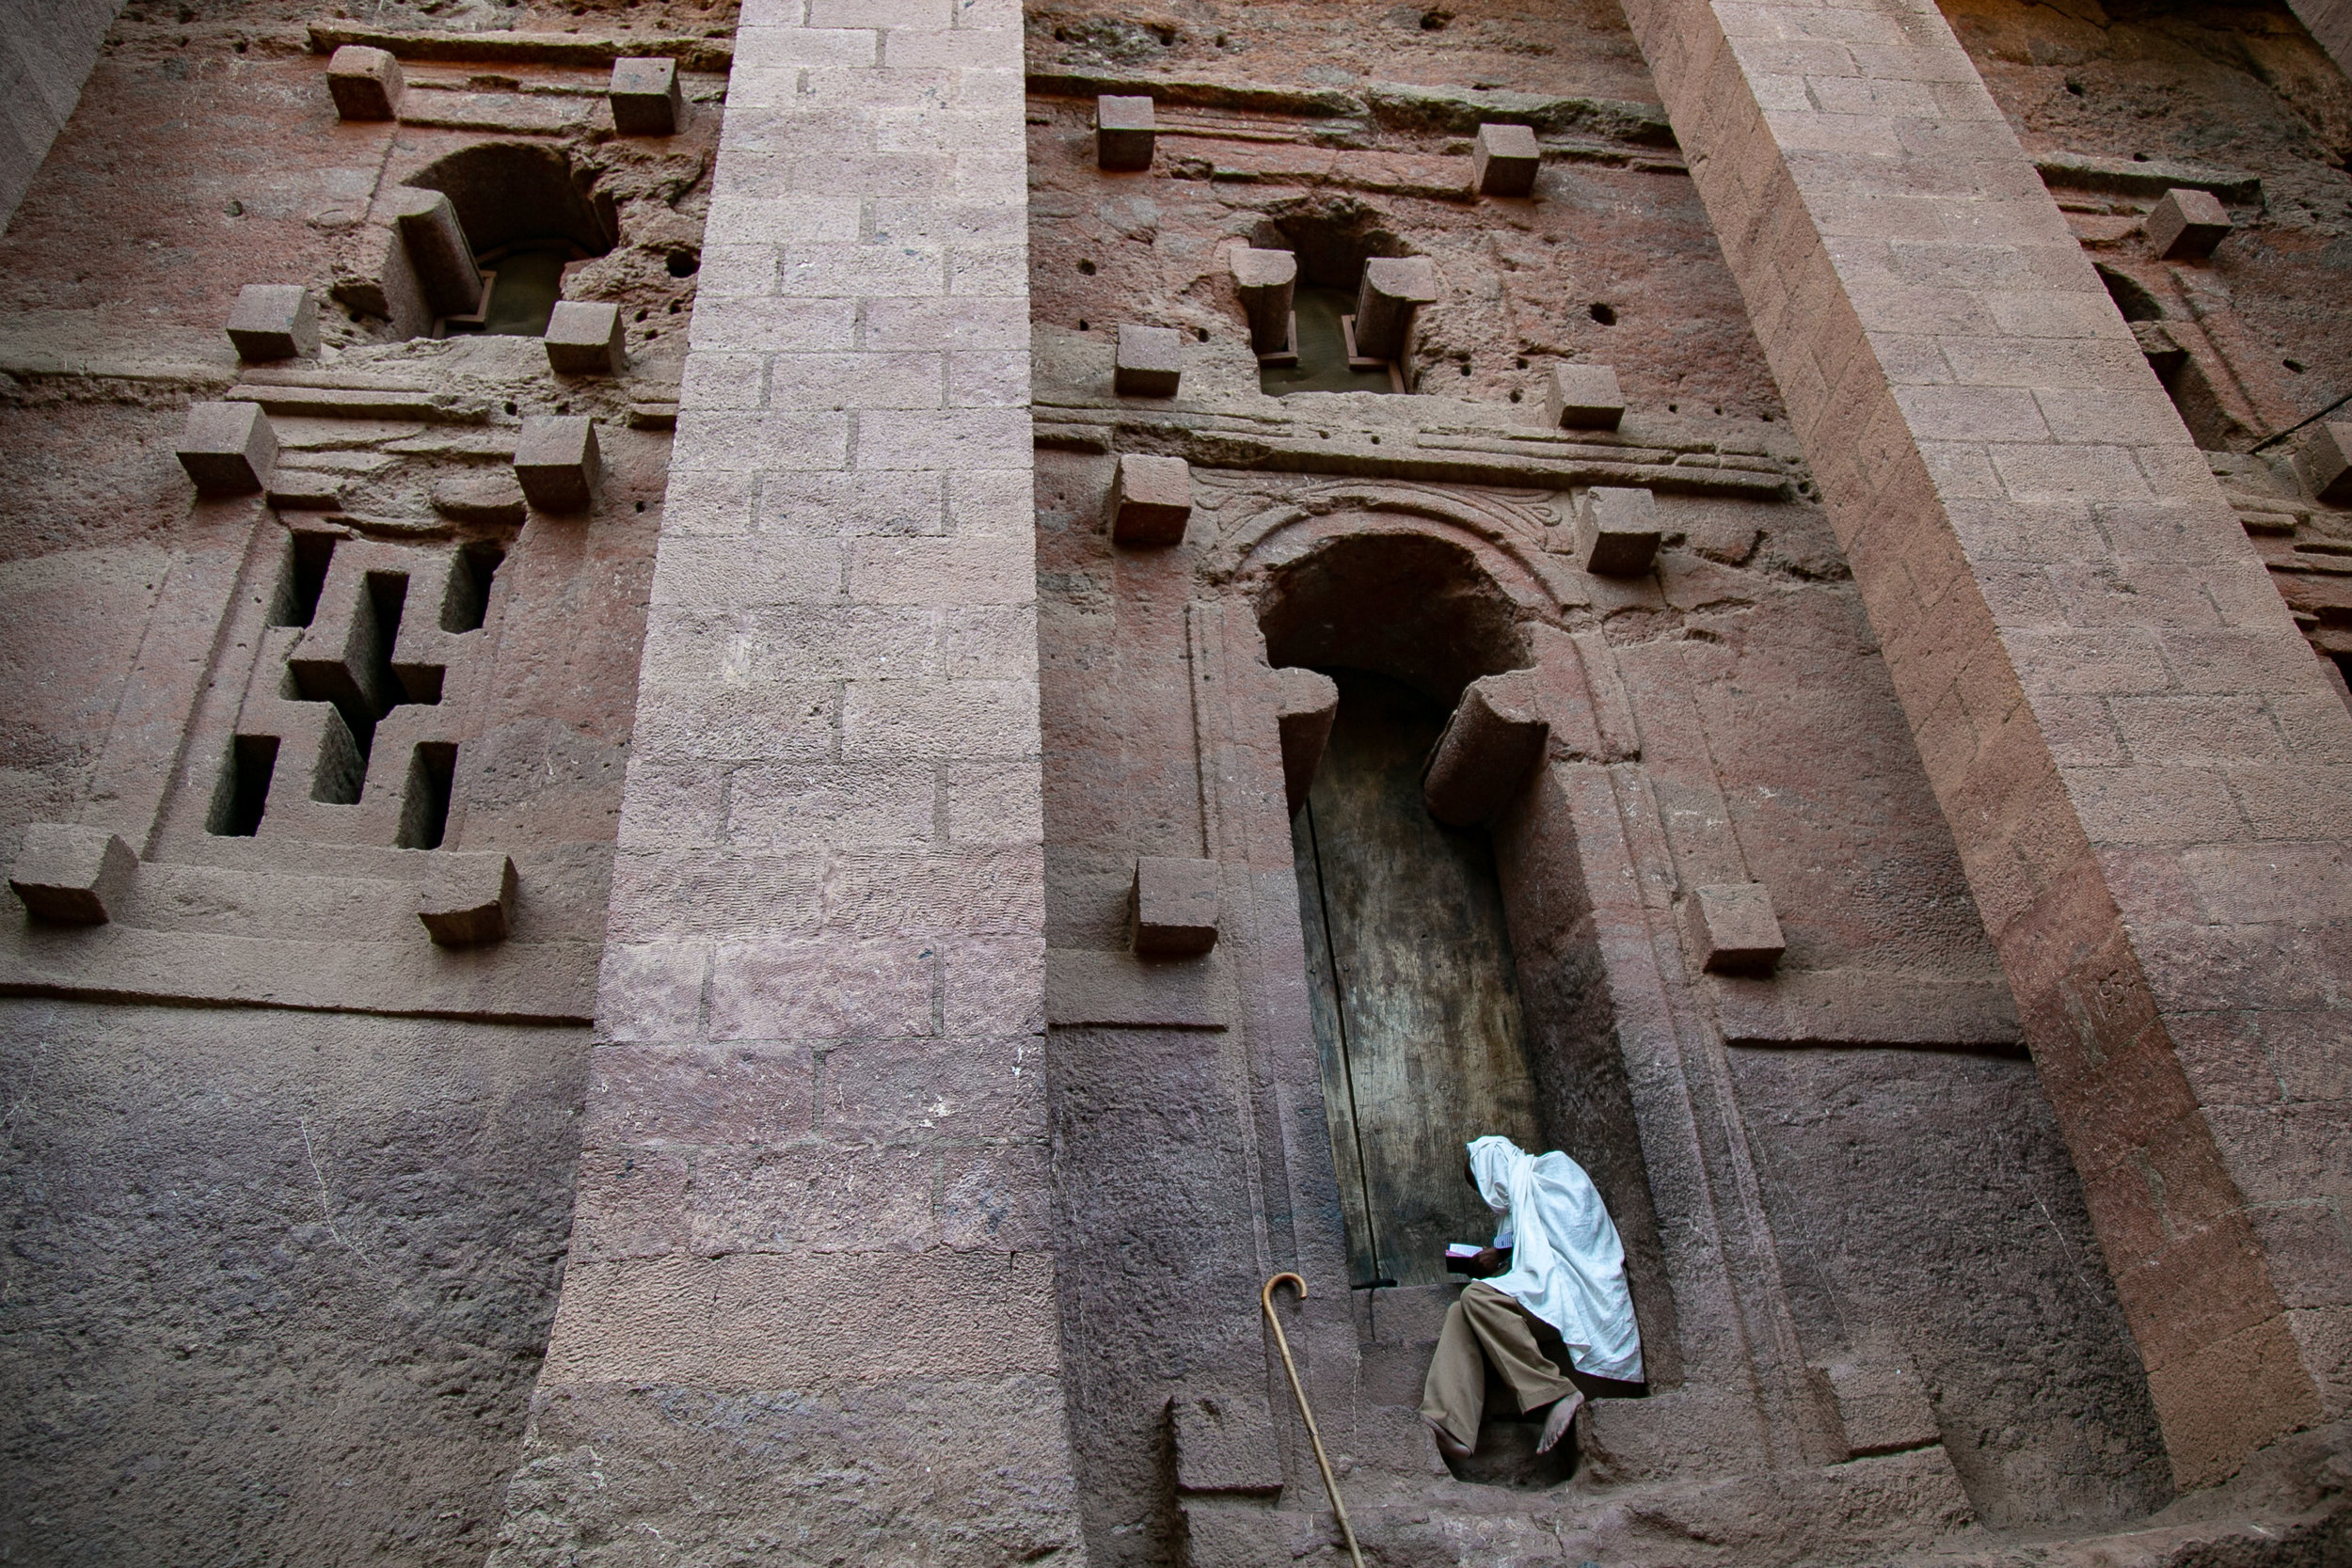 A monk sits reading his hand-copied goat-skin parchment scripture book on the steps of Bete Medhante Alem (church of the savior of the world), which was carved out of solid rock several hundred years ago. It's Lalibela's largest rock-hewn church. // photo © Kim I. Mott